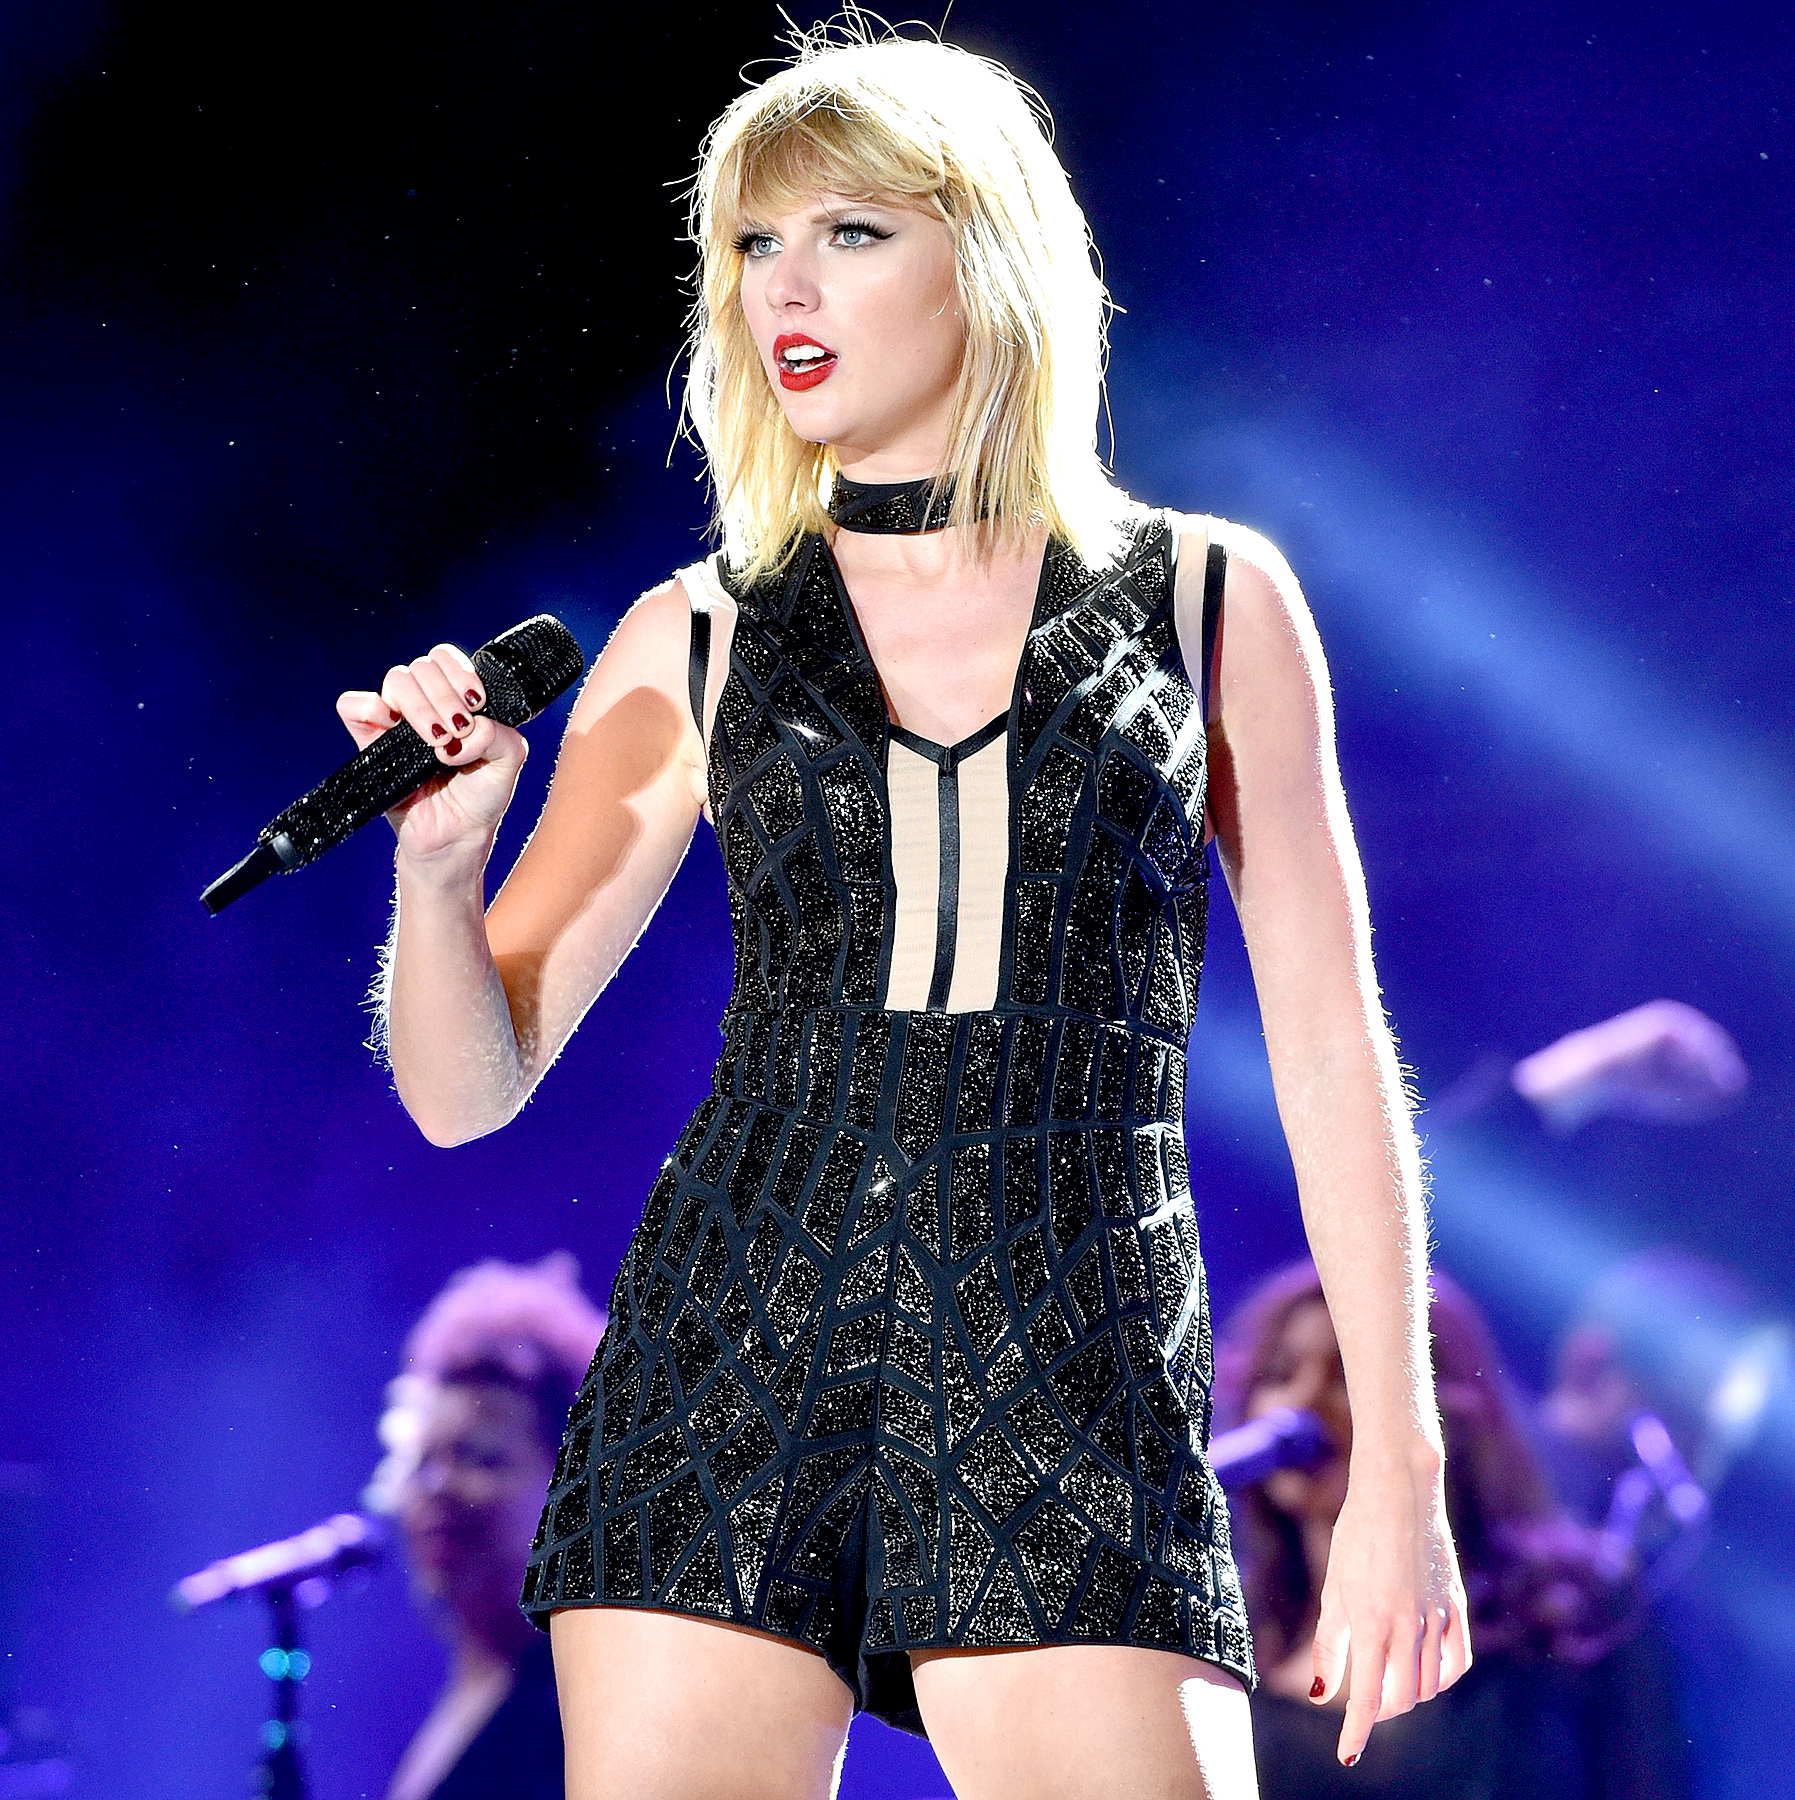 Taylor swifts new album chronicles her feuds taylor swift perfoms onstage during the formula 1 usgp on october 22 2016 in austin stopboris Image collections